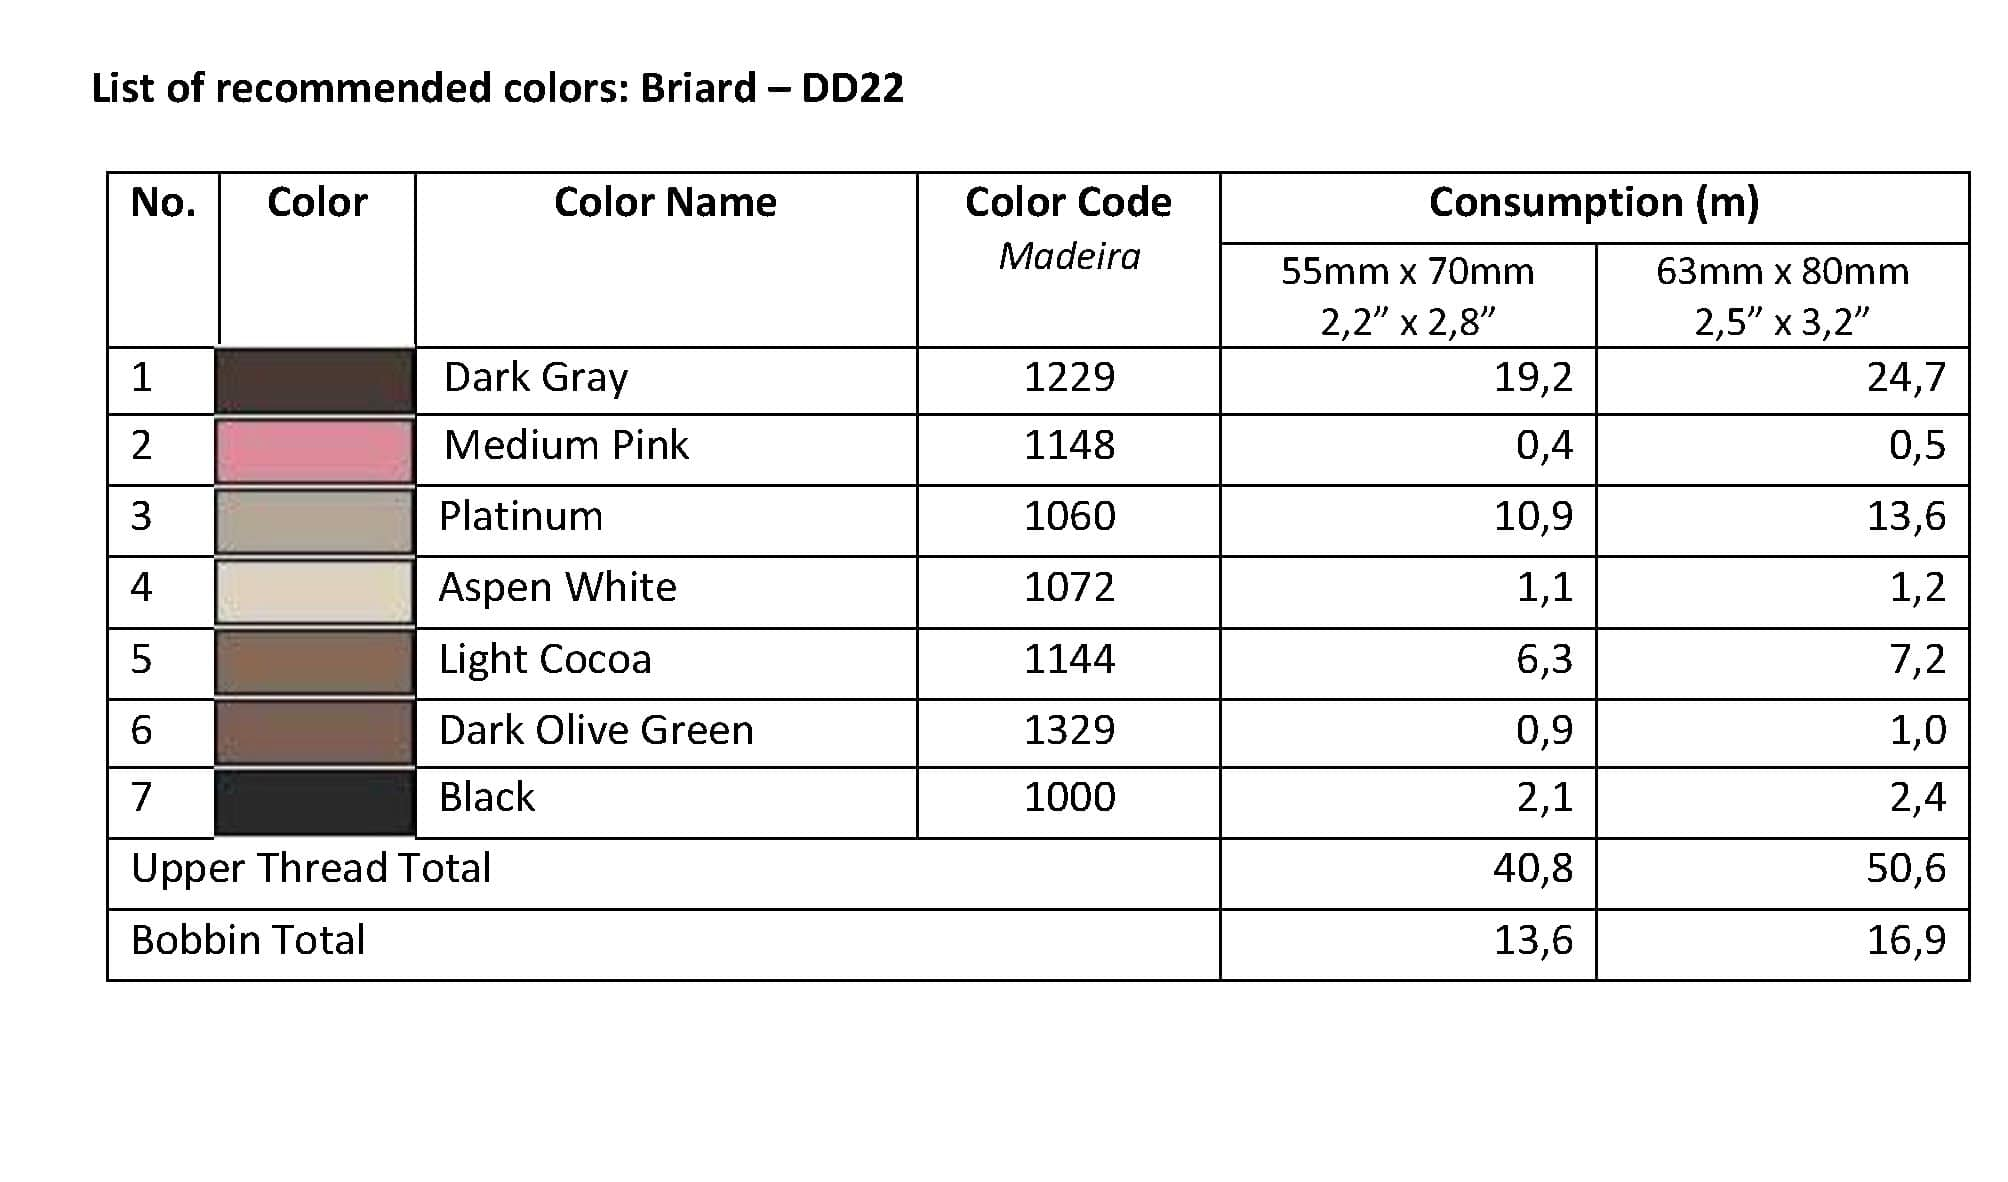 List of Recommended Colors - Briard DD22